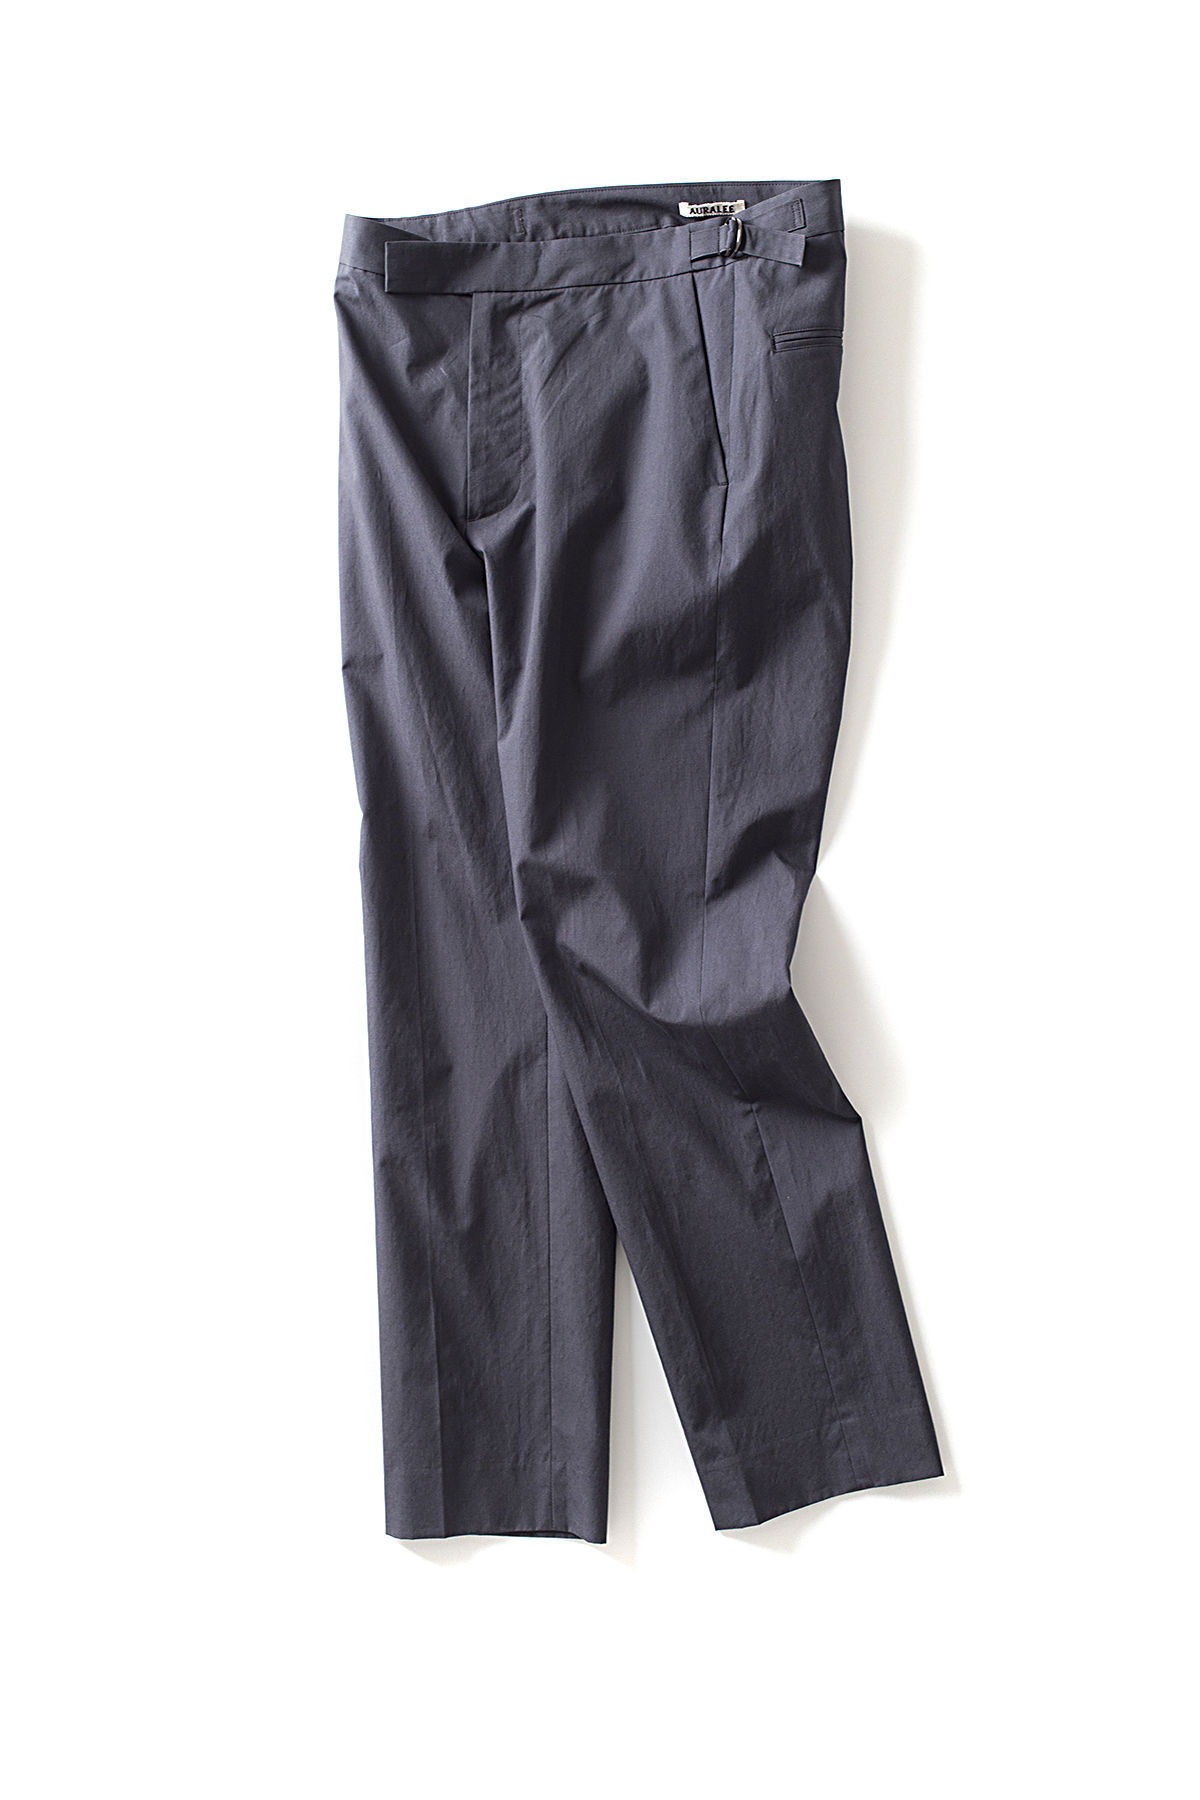 Auralee : Washed Finx Ripstop Slacks (Ink Black)